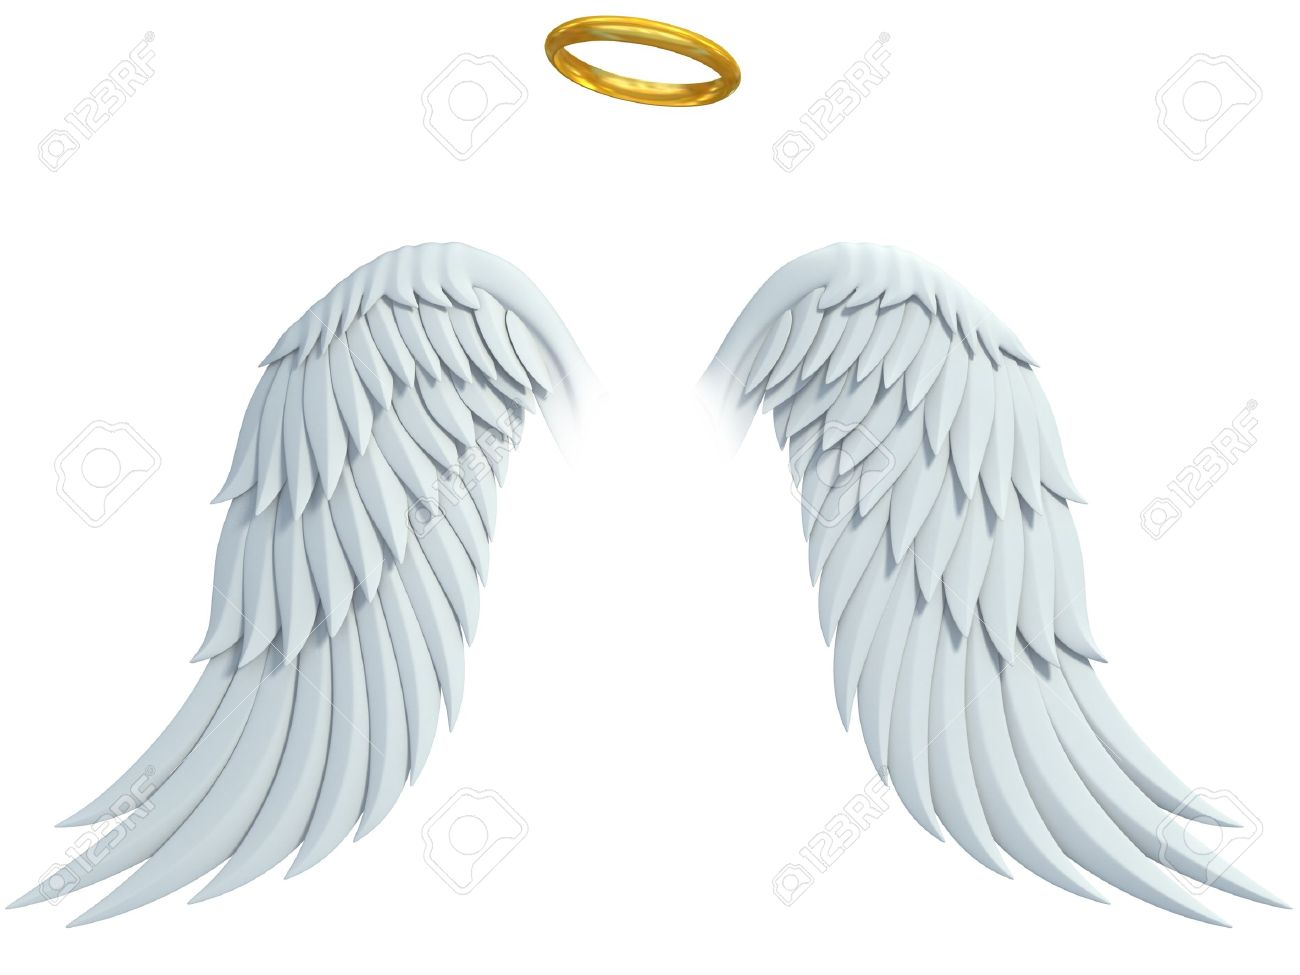 guardian angel stock photos pictures royalty free guardian